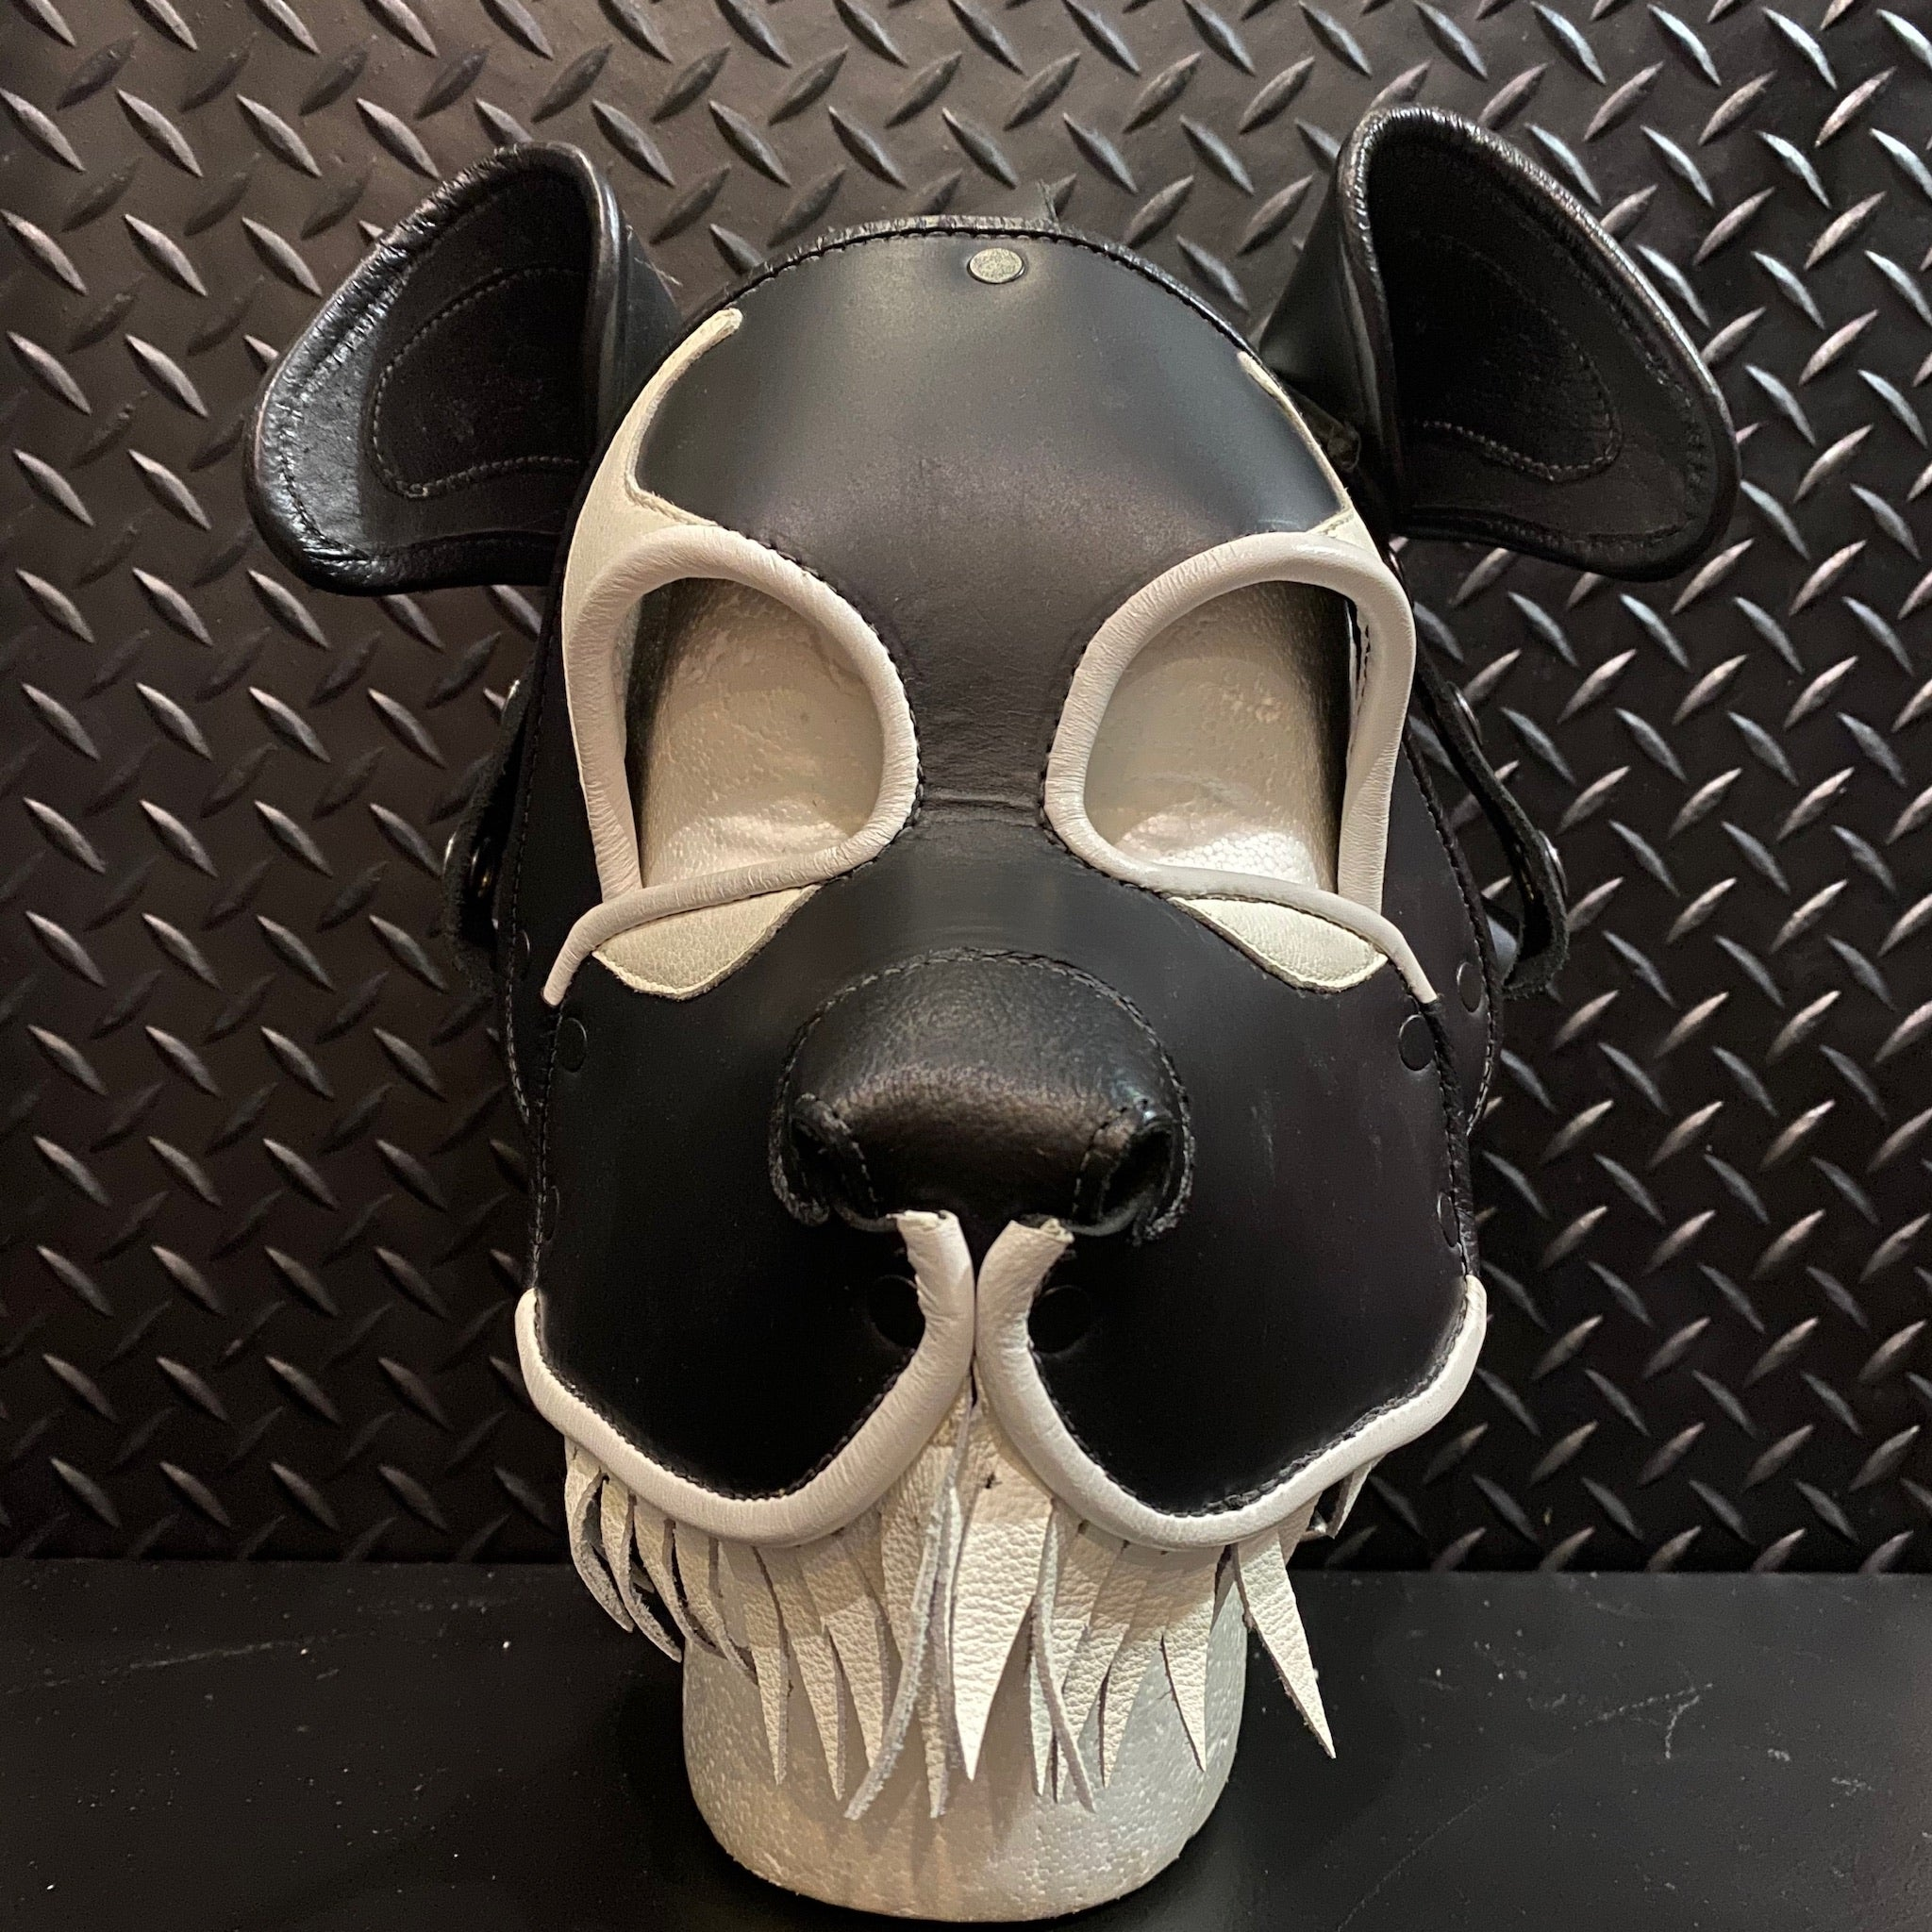 P&C CREATIONS PUP HOOD-VENOM